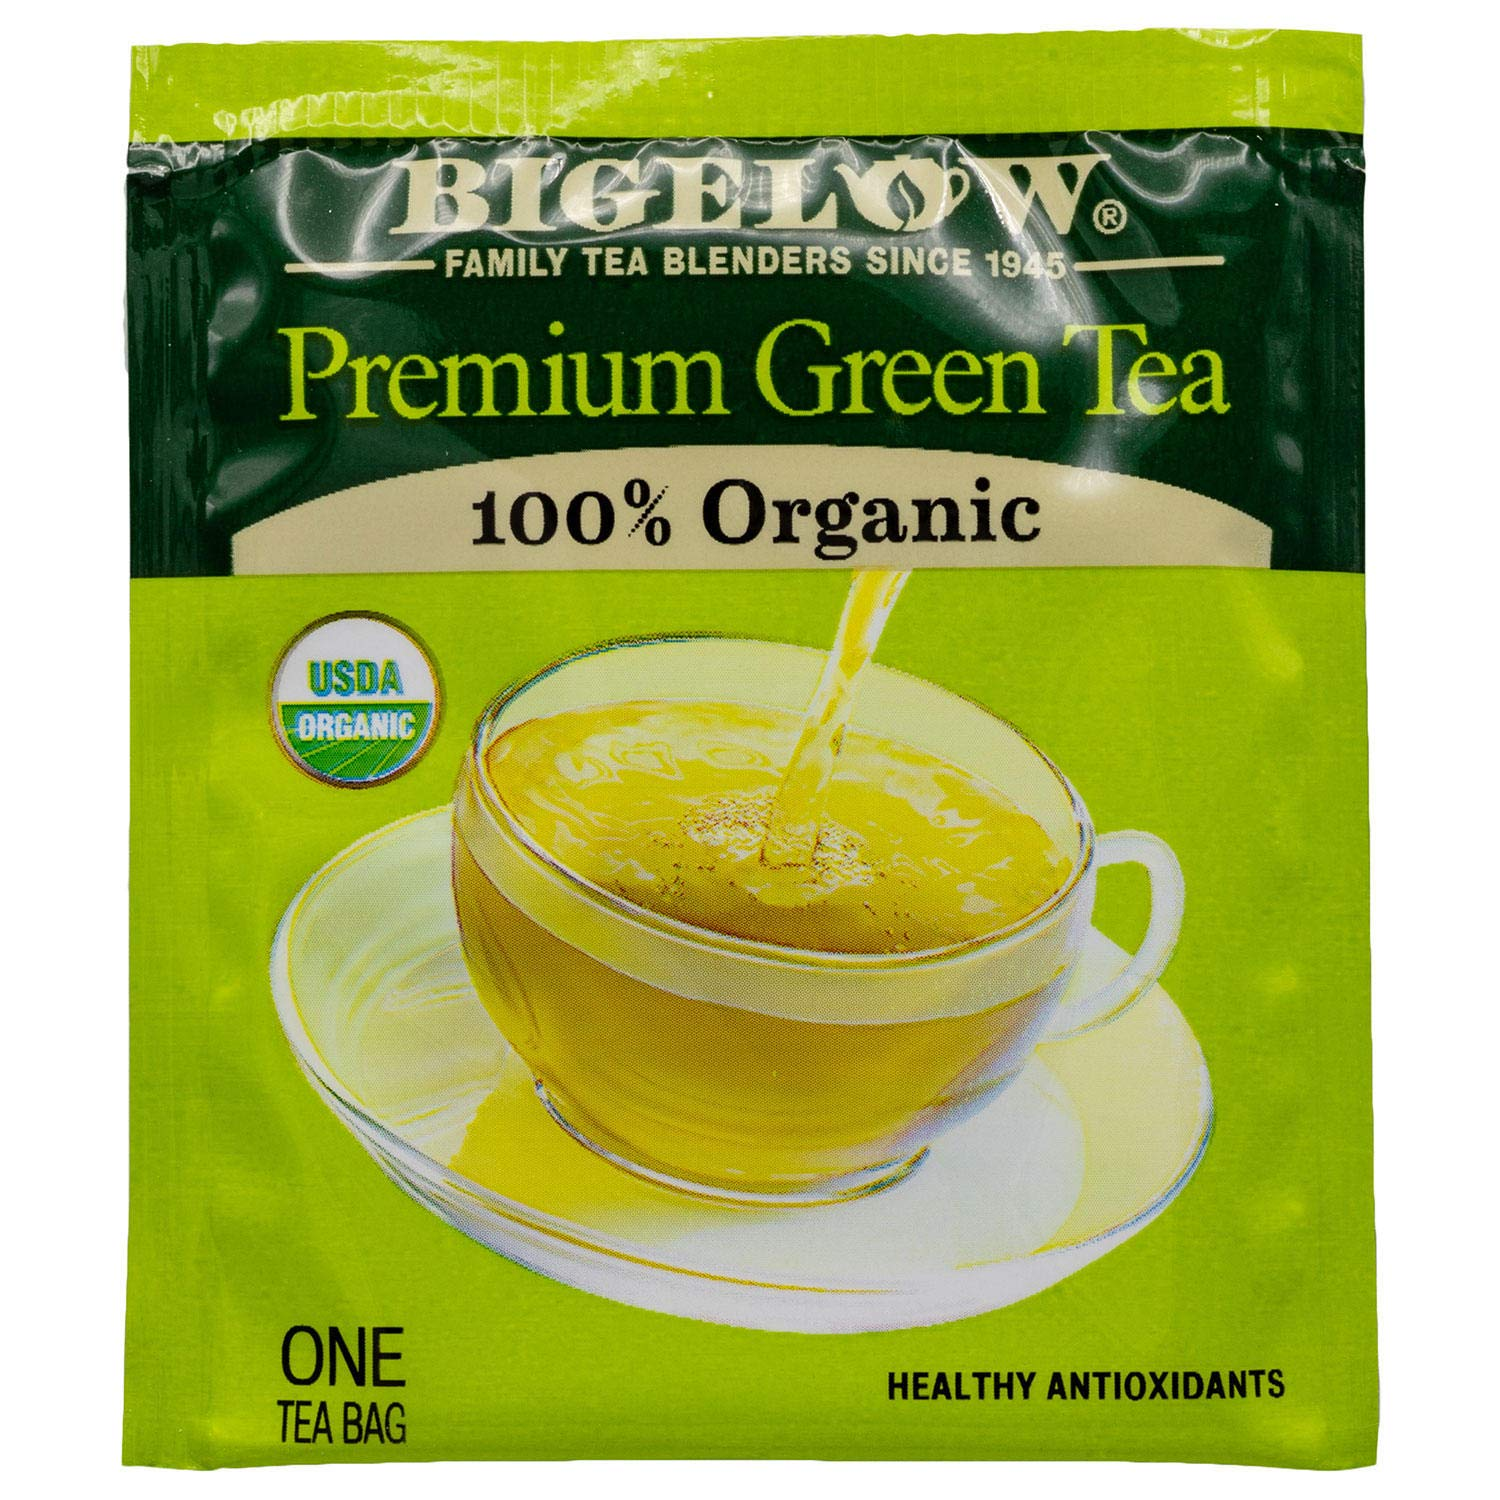 Bigelow Premium Organic Green Tea, 160 Count Box, Individually Wrapped Bags